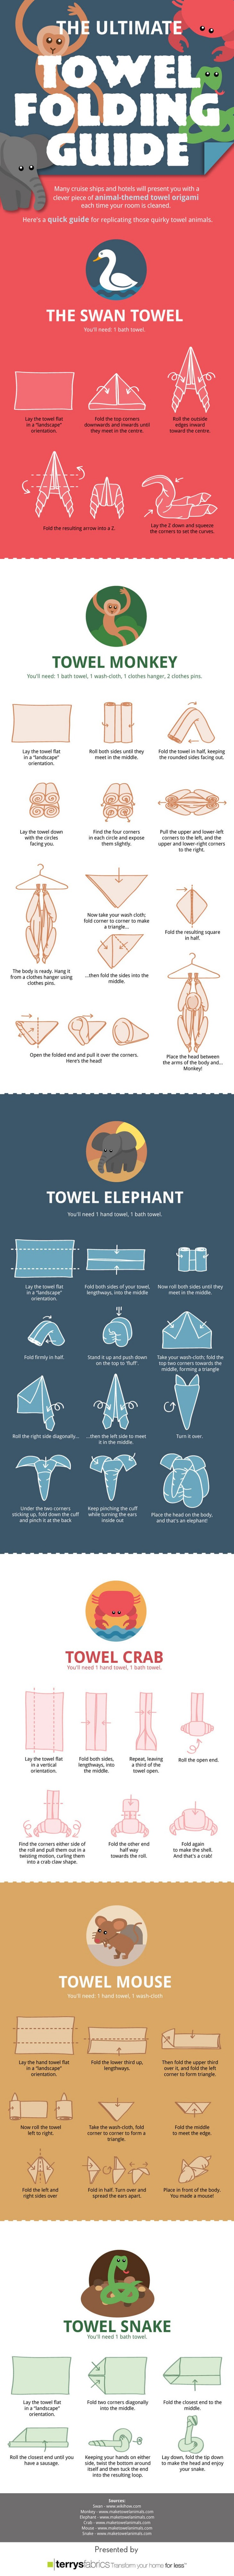 towel, folding, guide